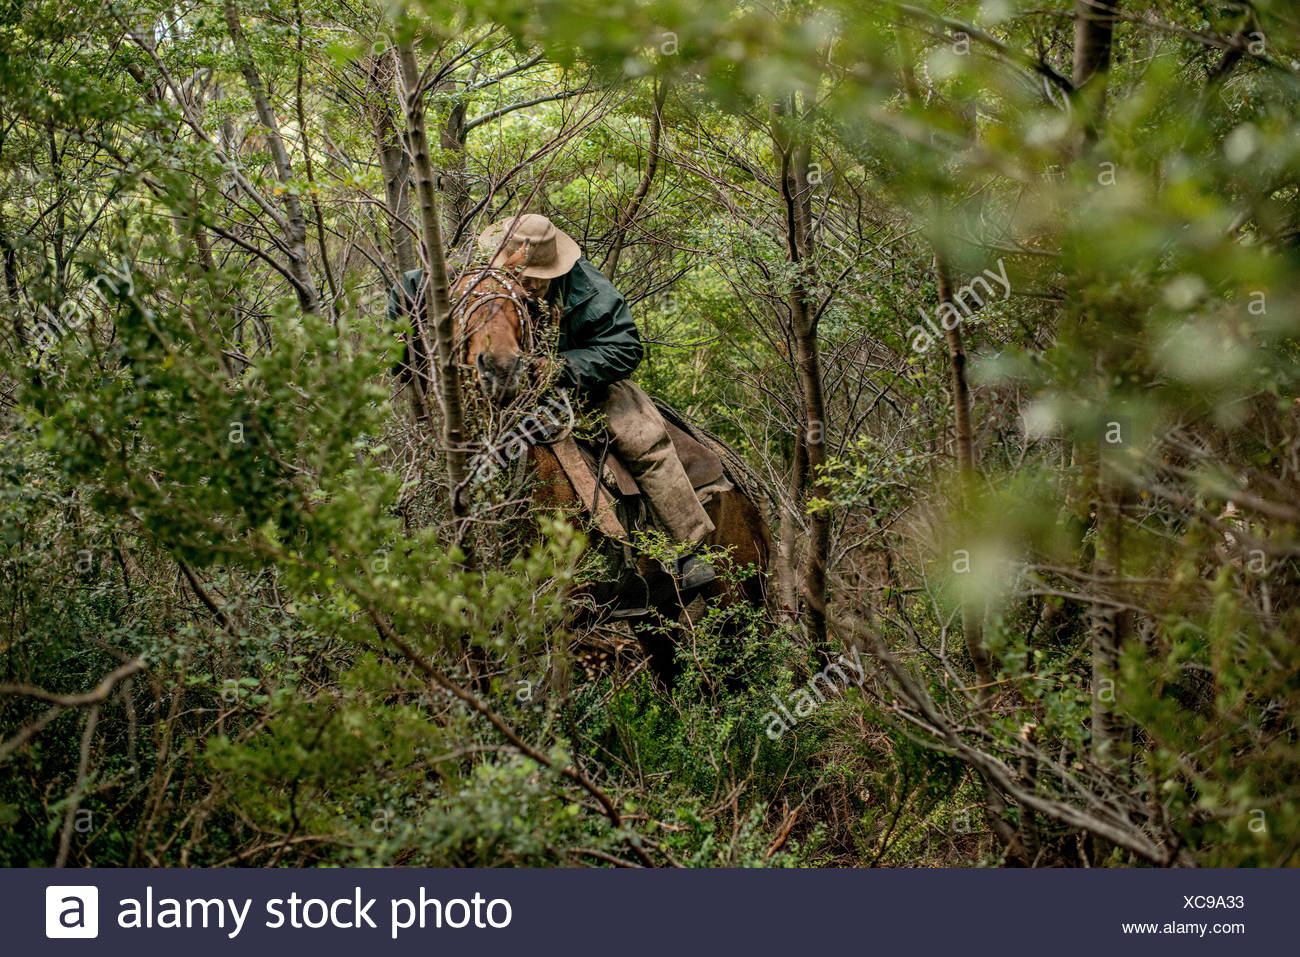 A bagualero, a cowboy who captures feral livestock, hacks a trail through the forest on horseback. - Stock Image